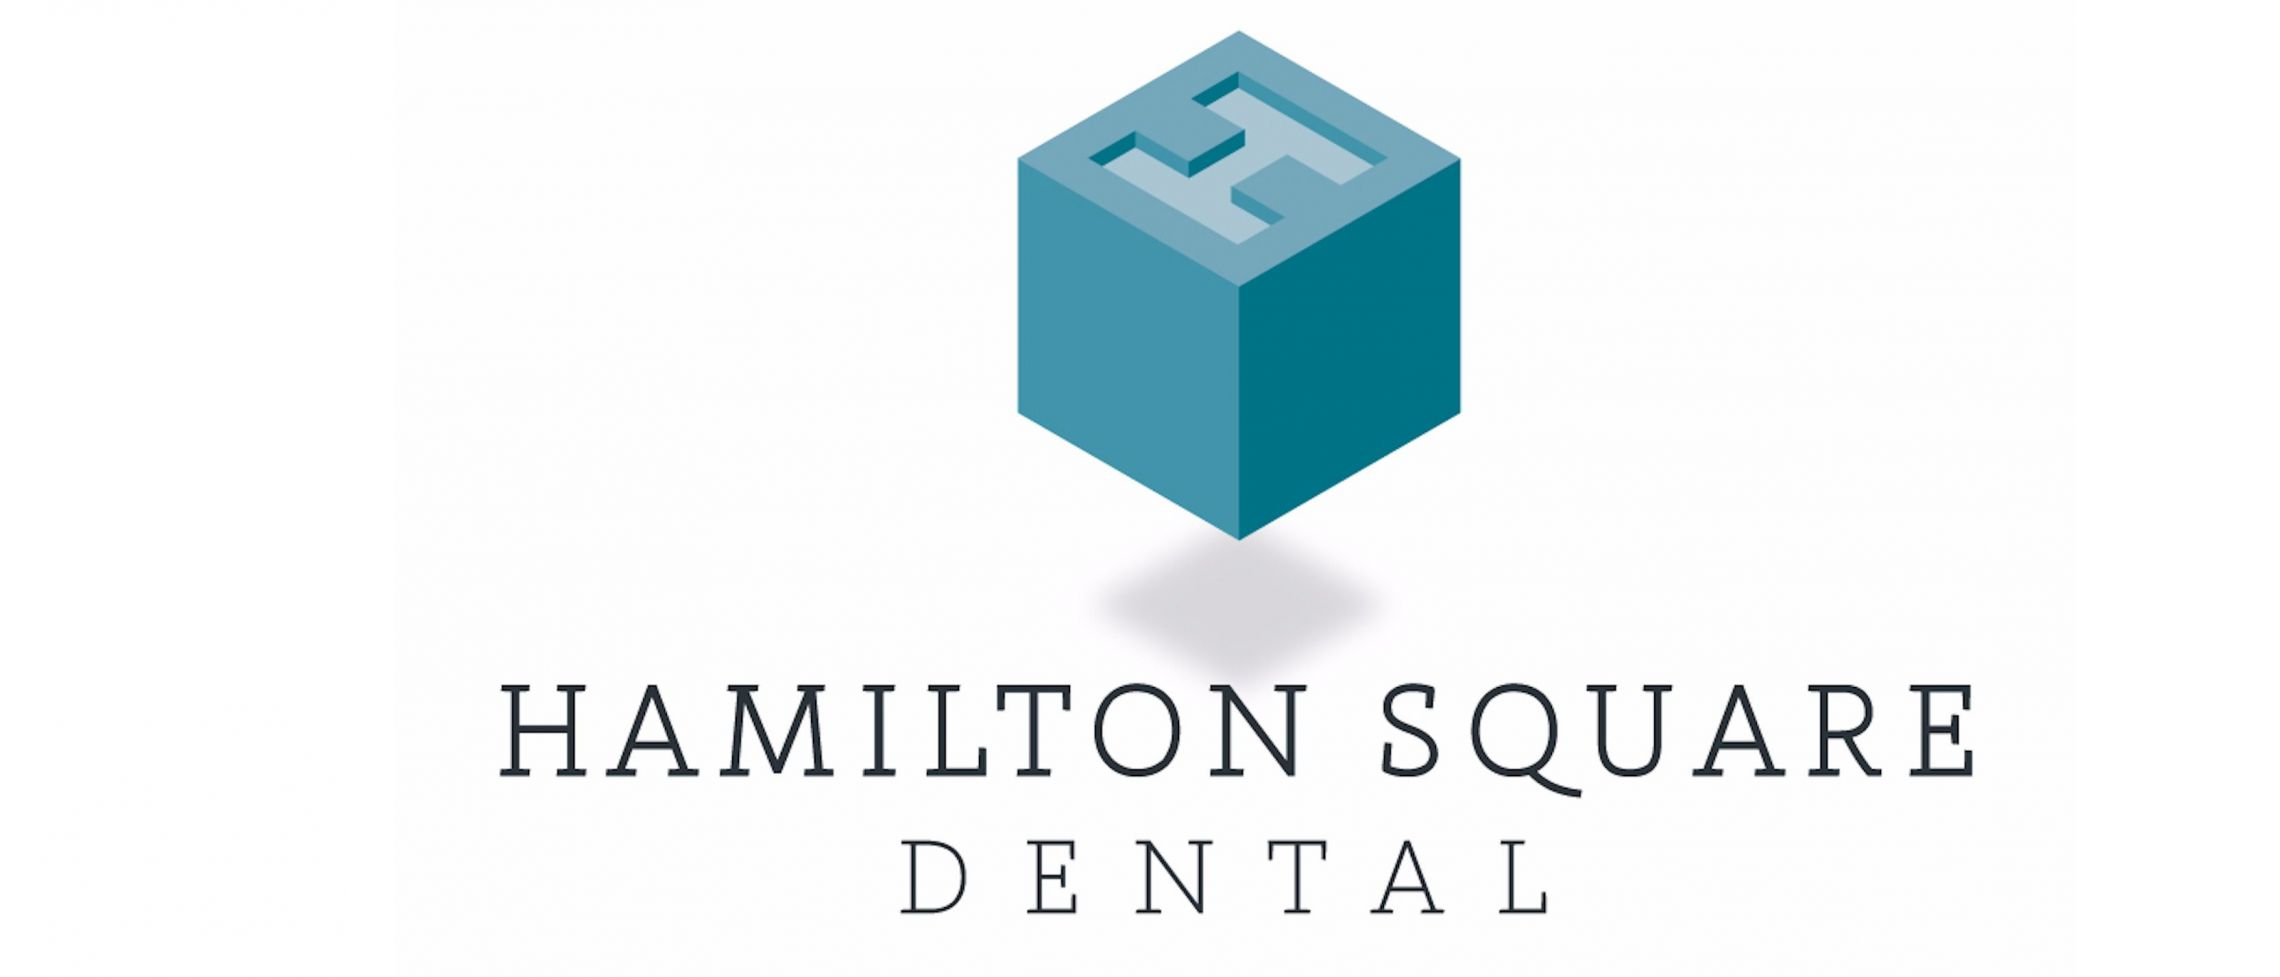 Hamilton Square Dental Practice - The MiSmile Network